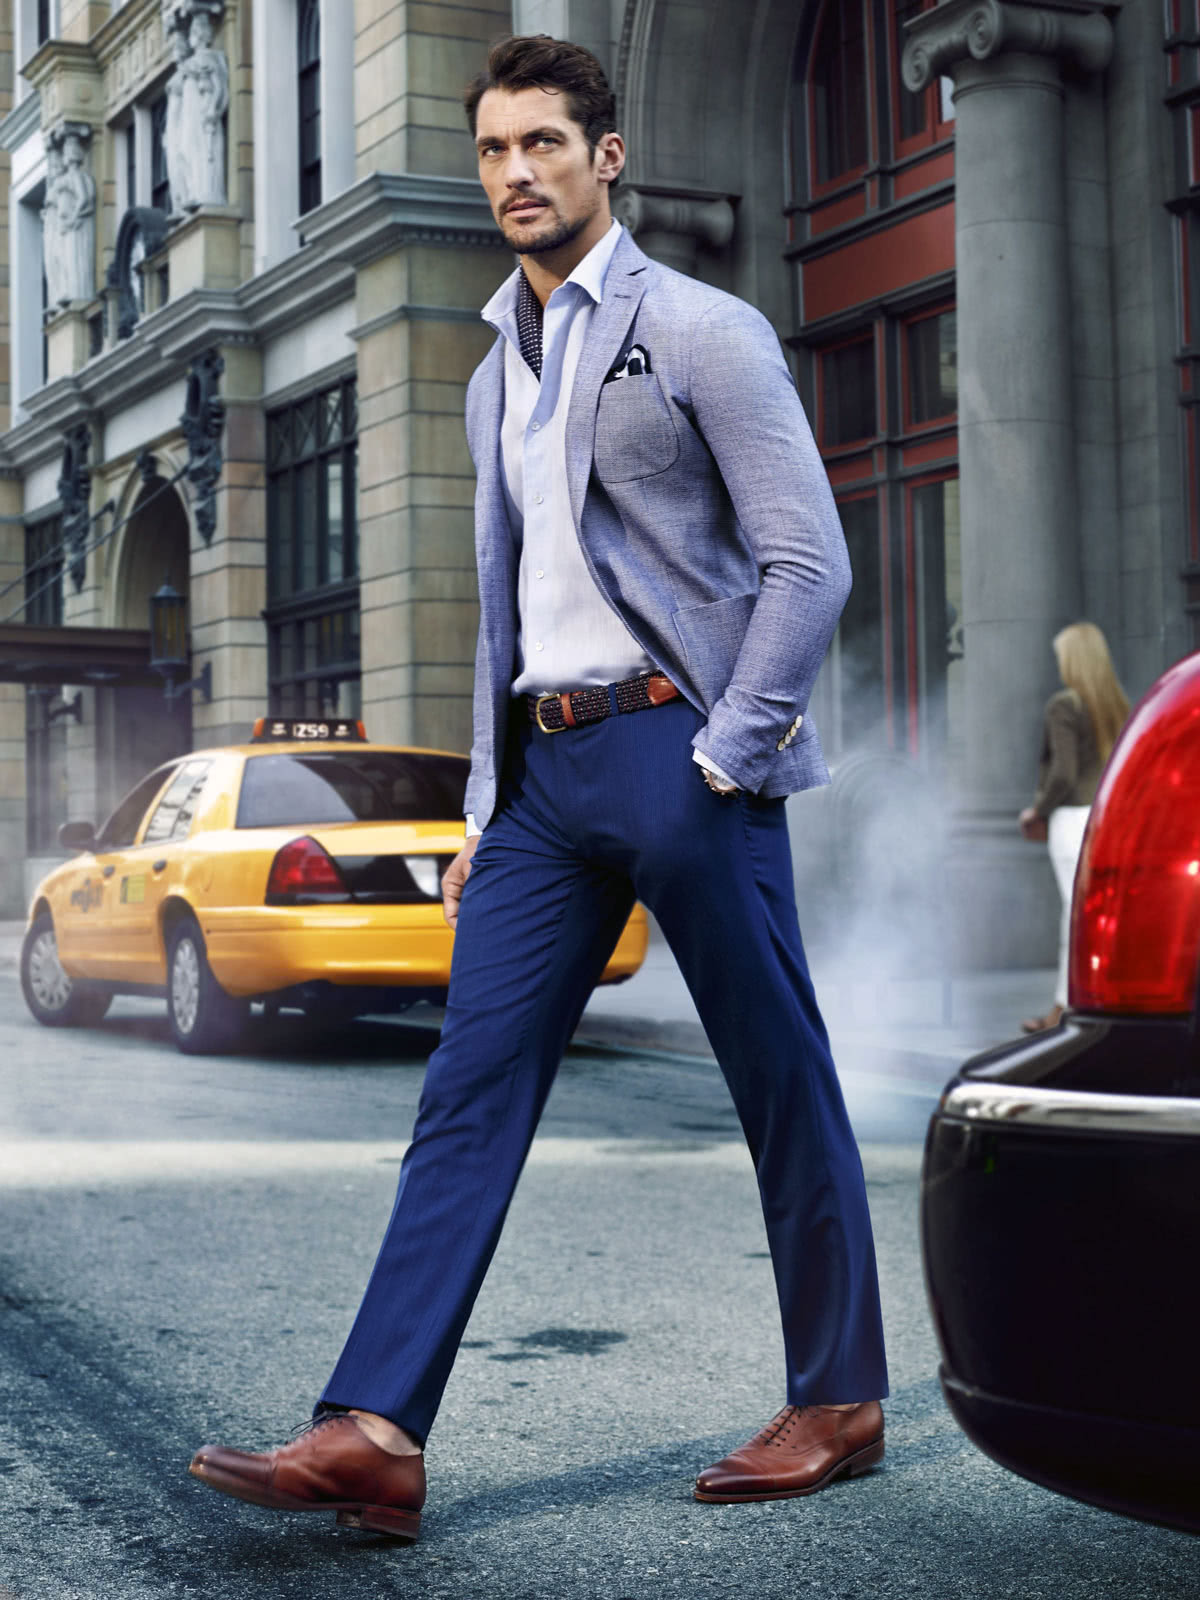 Smart Casual Dress Code For Men Ultimate Style Guide 2019 Updated